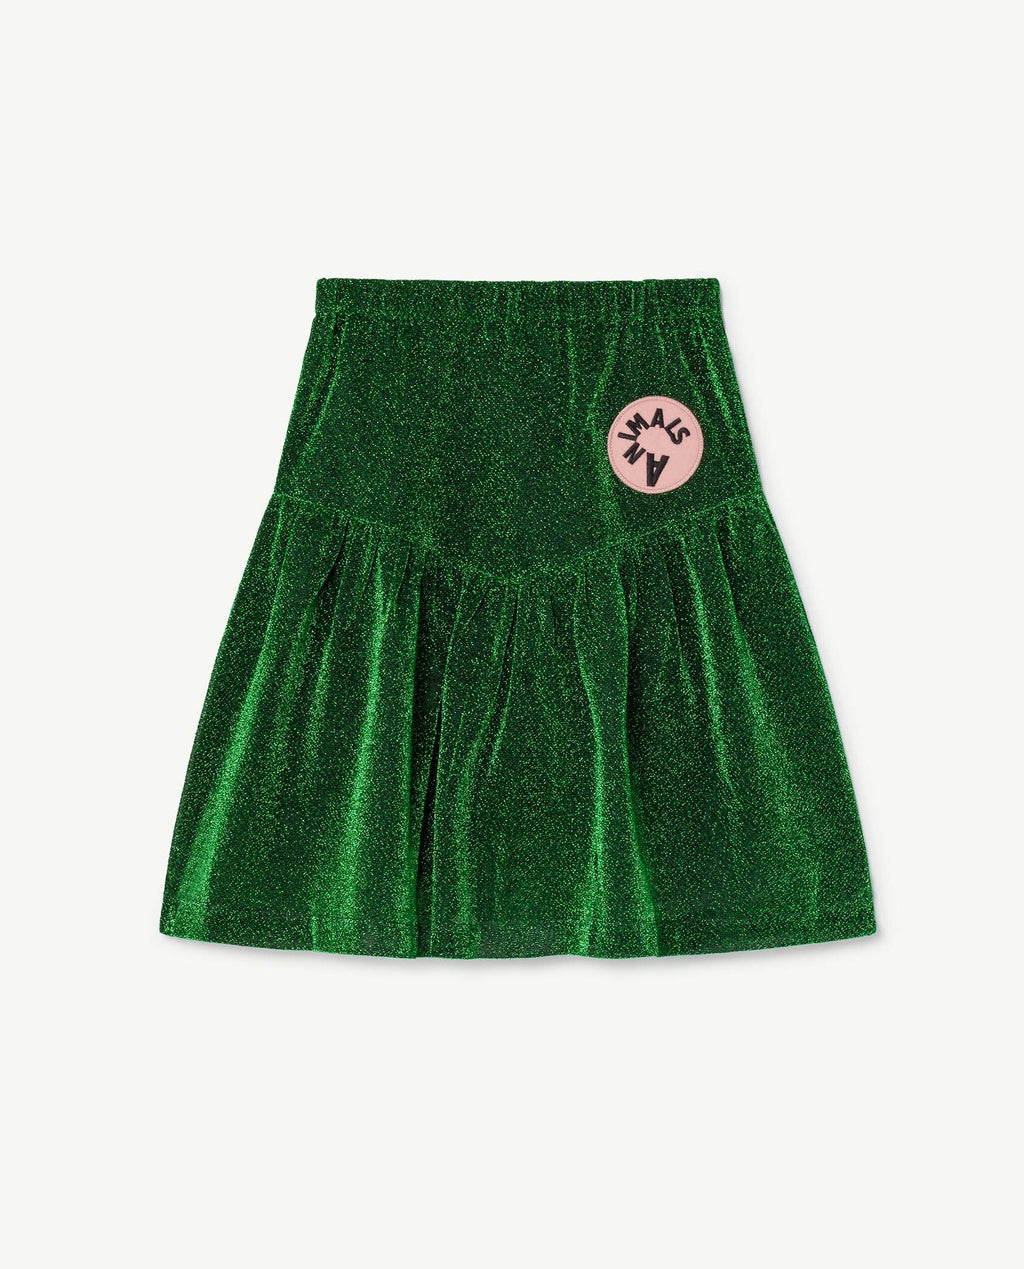 This electric green skirt is a pull-on skater style skirt in a whimsical all-over print with a V-shaped center panel and slightly gathered skirt.